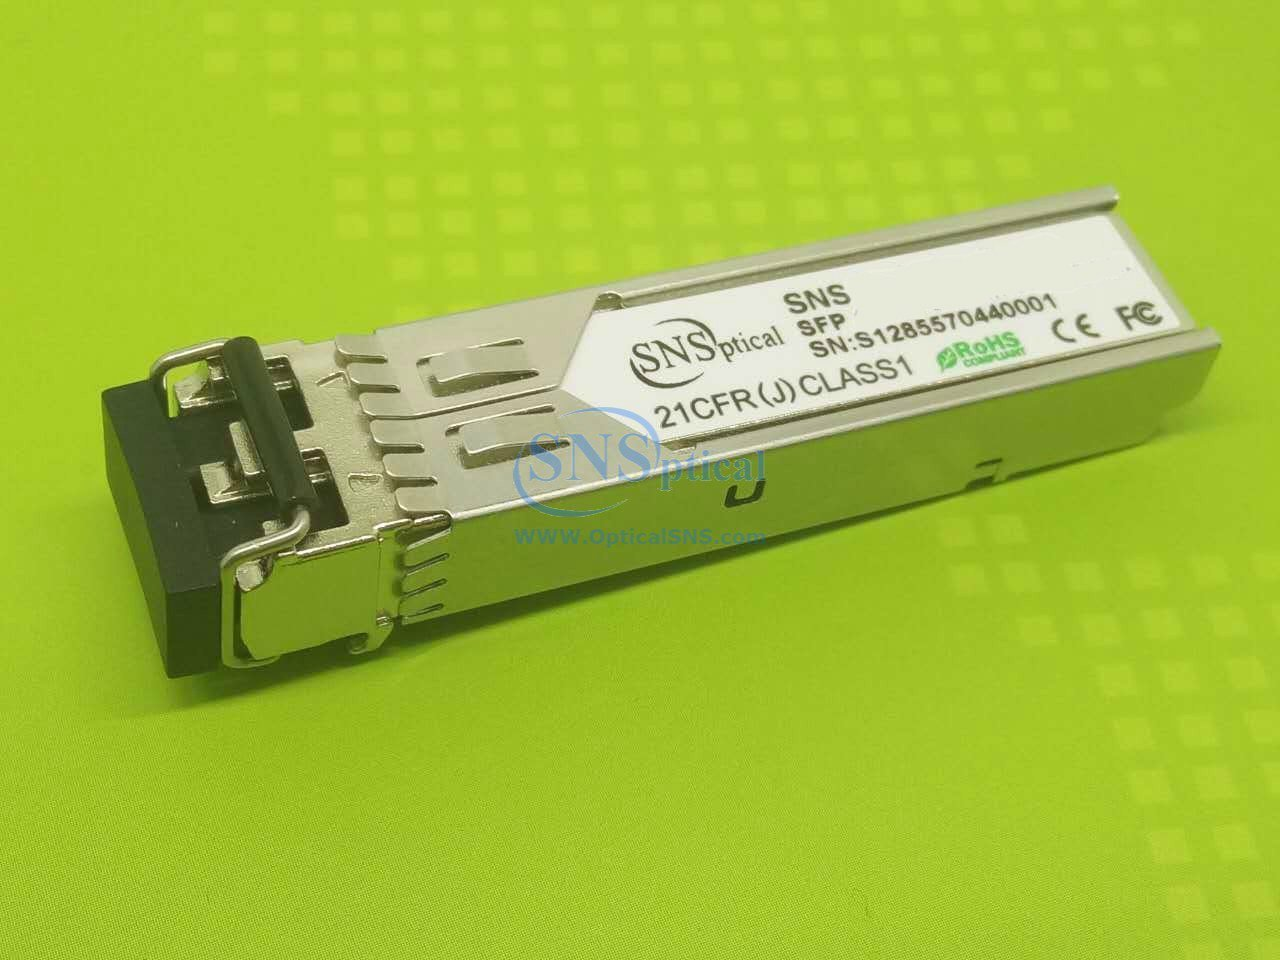 J4858C 1000BASE-SX SFP Transceiver Module for MMF 1.25G 850nm 550M for HP